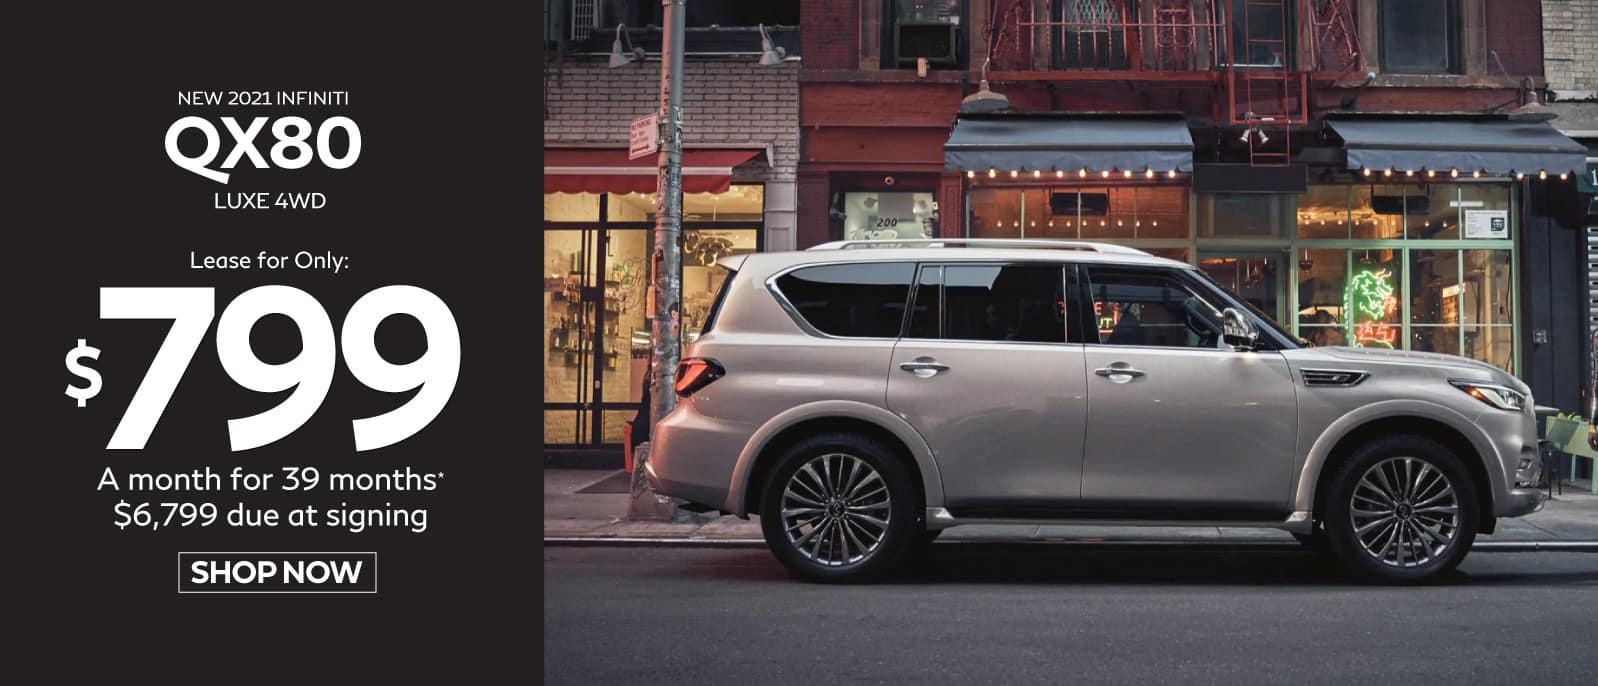 New 2021 QX80 Luxe 4WD Lease for $799 a month for 39 months, $6799 due at signing